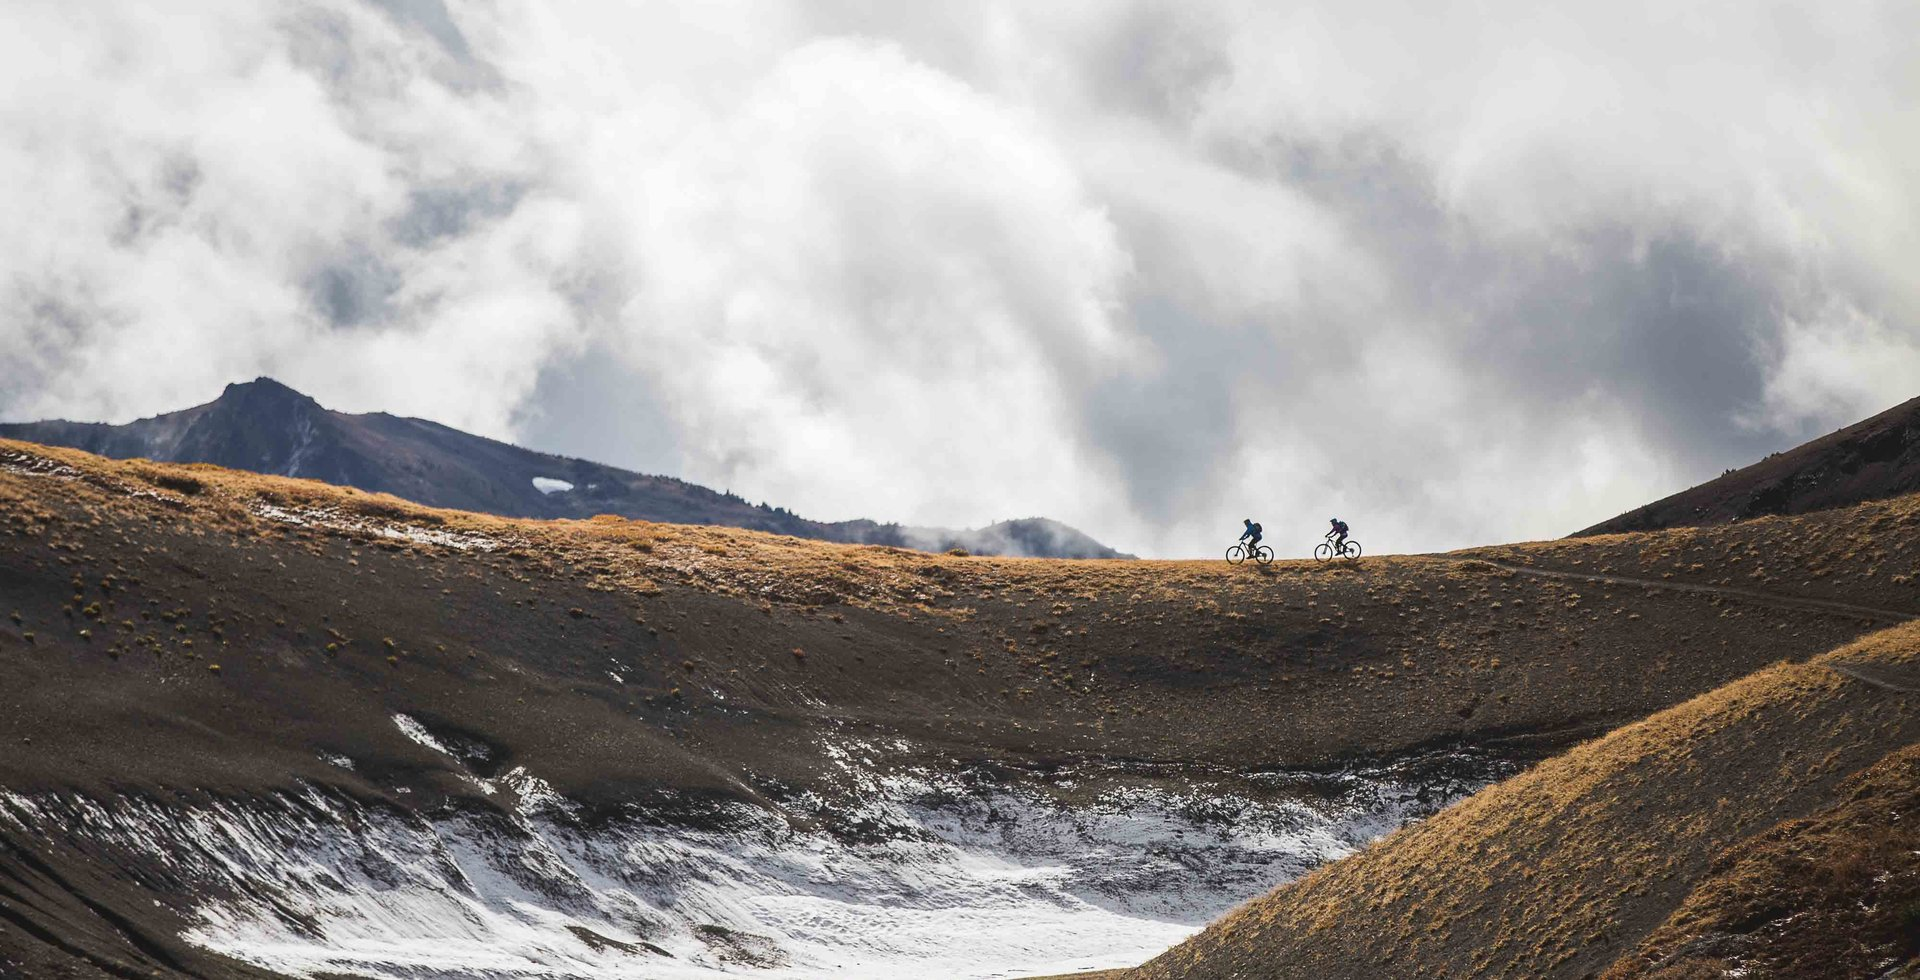 Be it on skis or in the saddle, Mark Abma isn't afraid to put in early mornings, long days, and hefty mileage, such as this big ride in the Chilcotins. Photo: Tom Richards